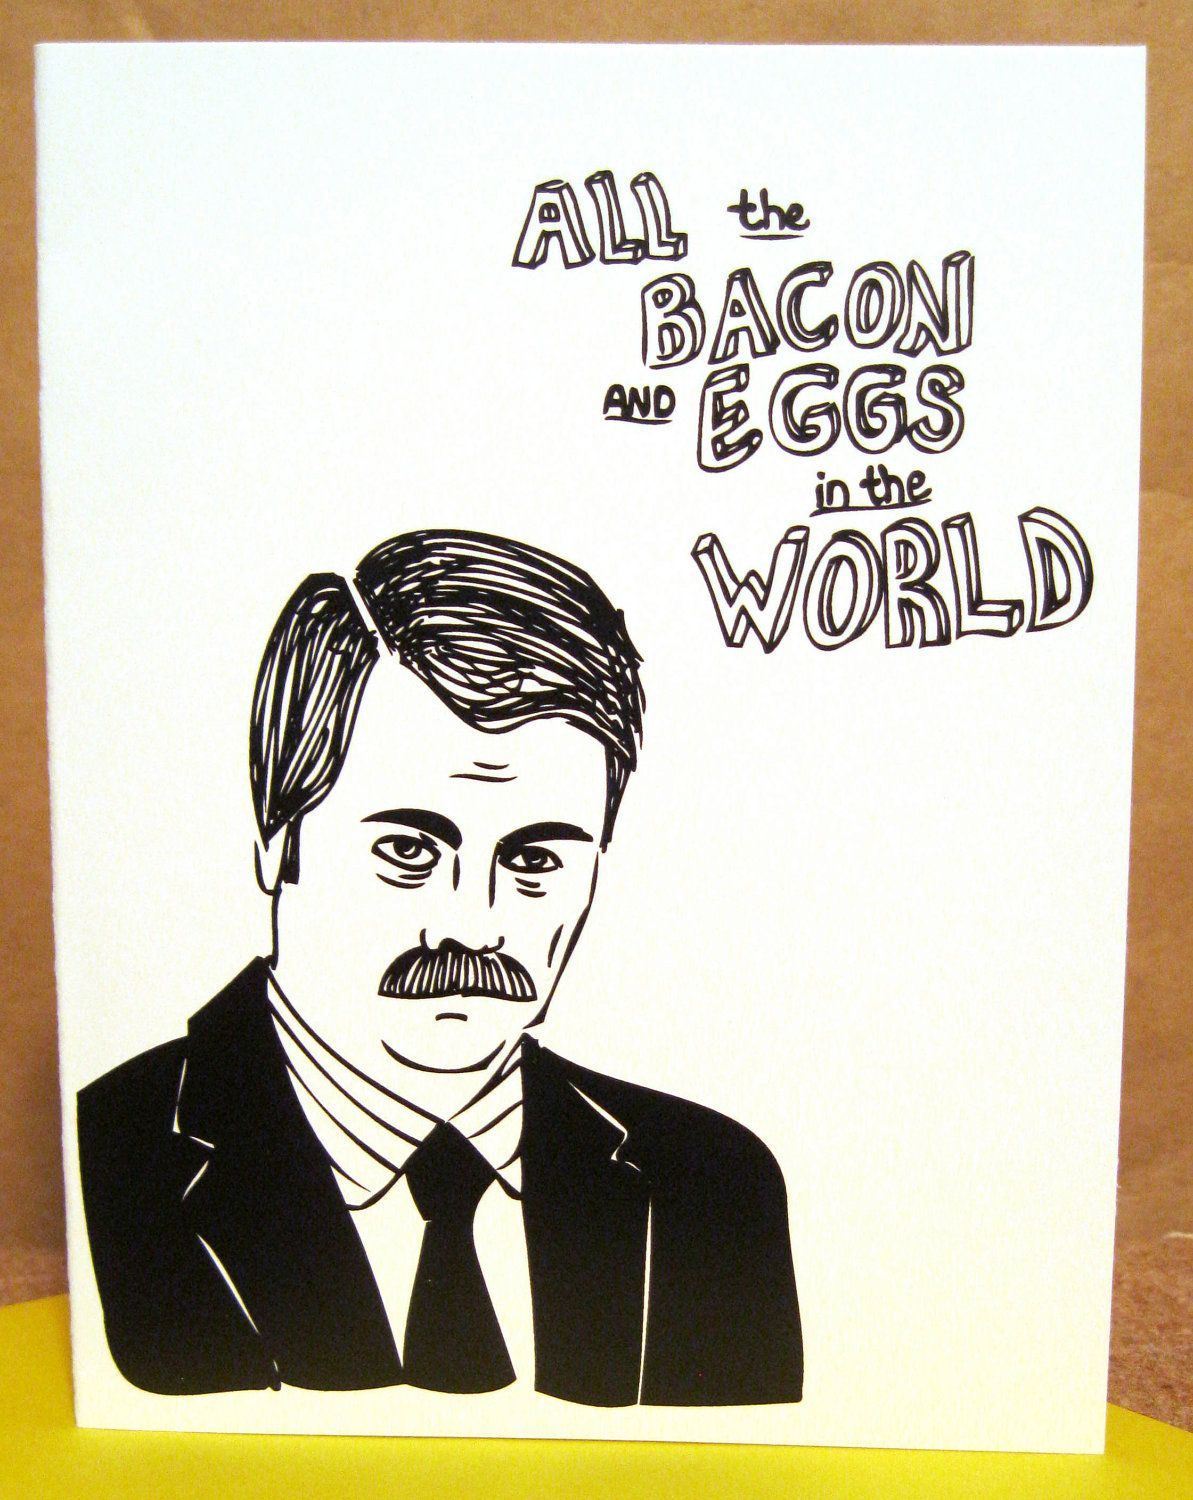 """""""All the bacon and eggs in the world...have nothing on you.""""  Ron Swanson Card!"""